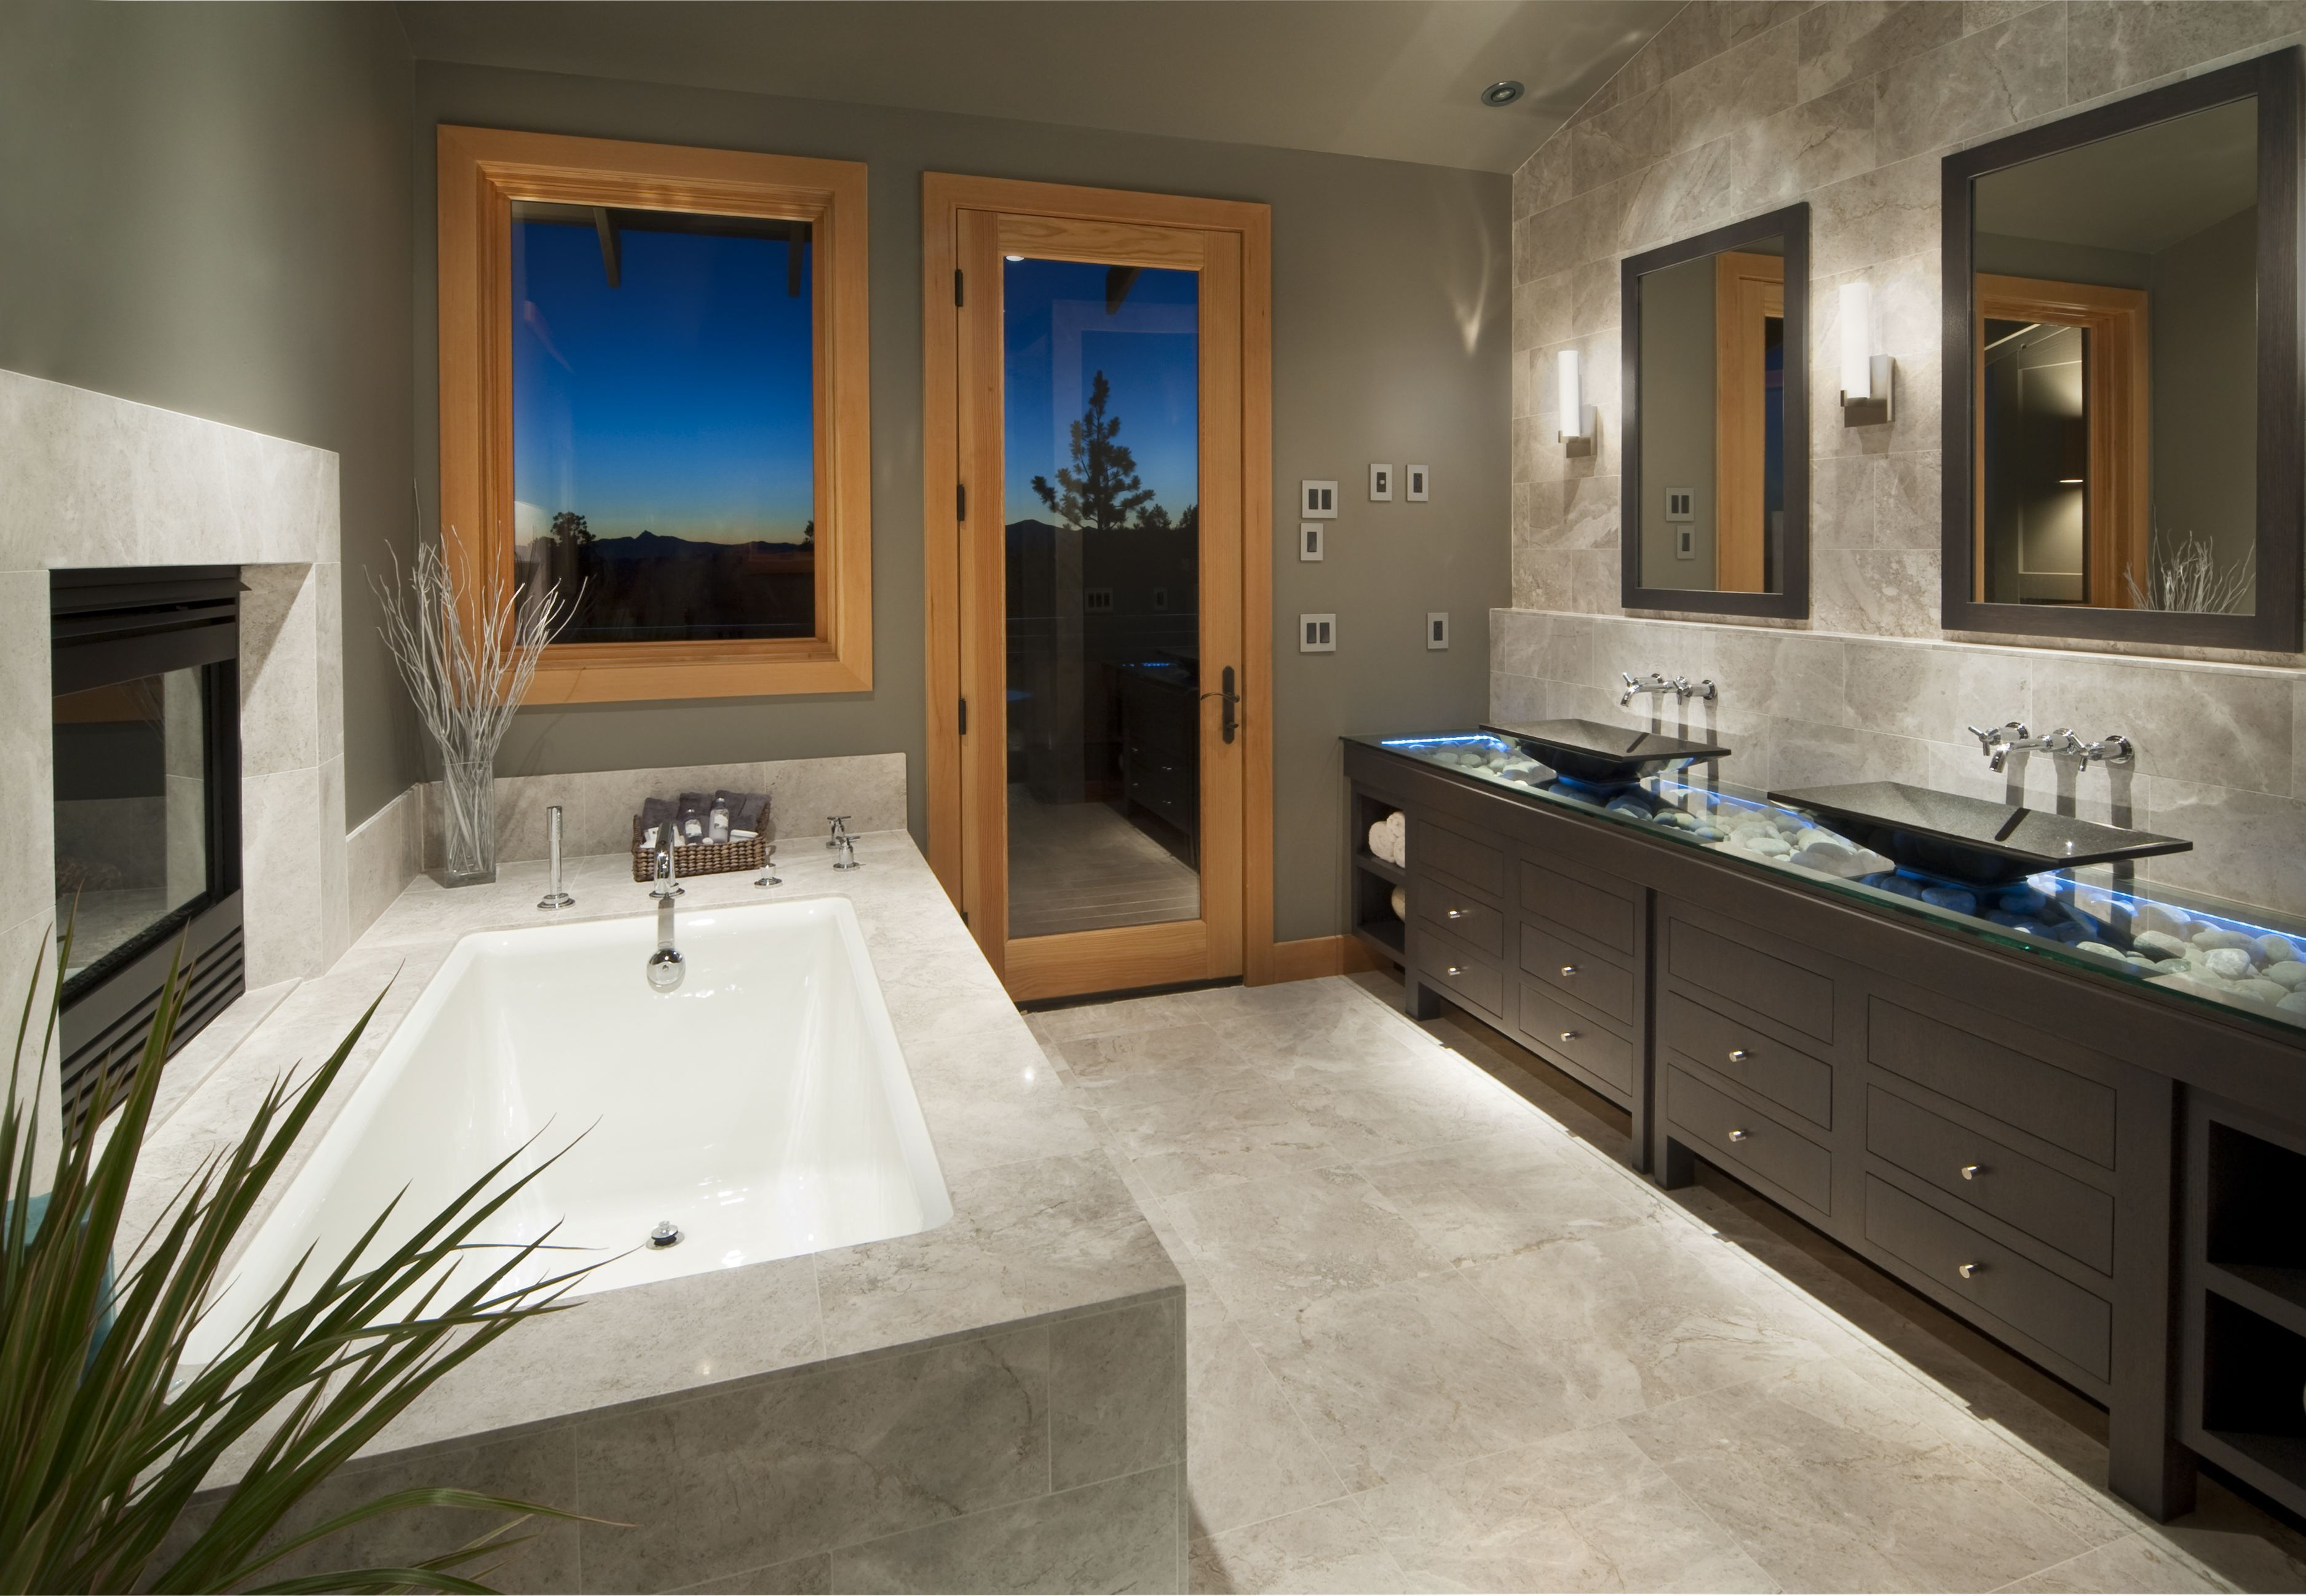 Bathroom Space Planning for Toilets, Sinks, and Counters